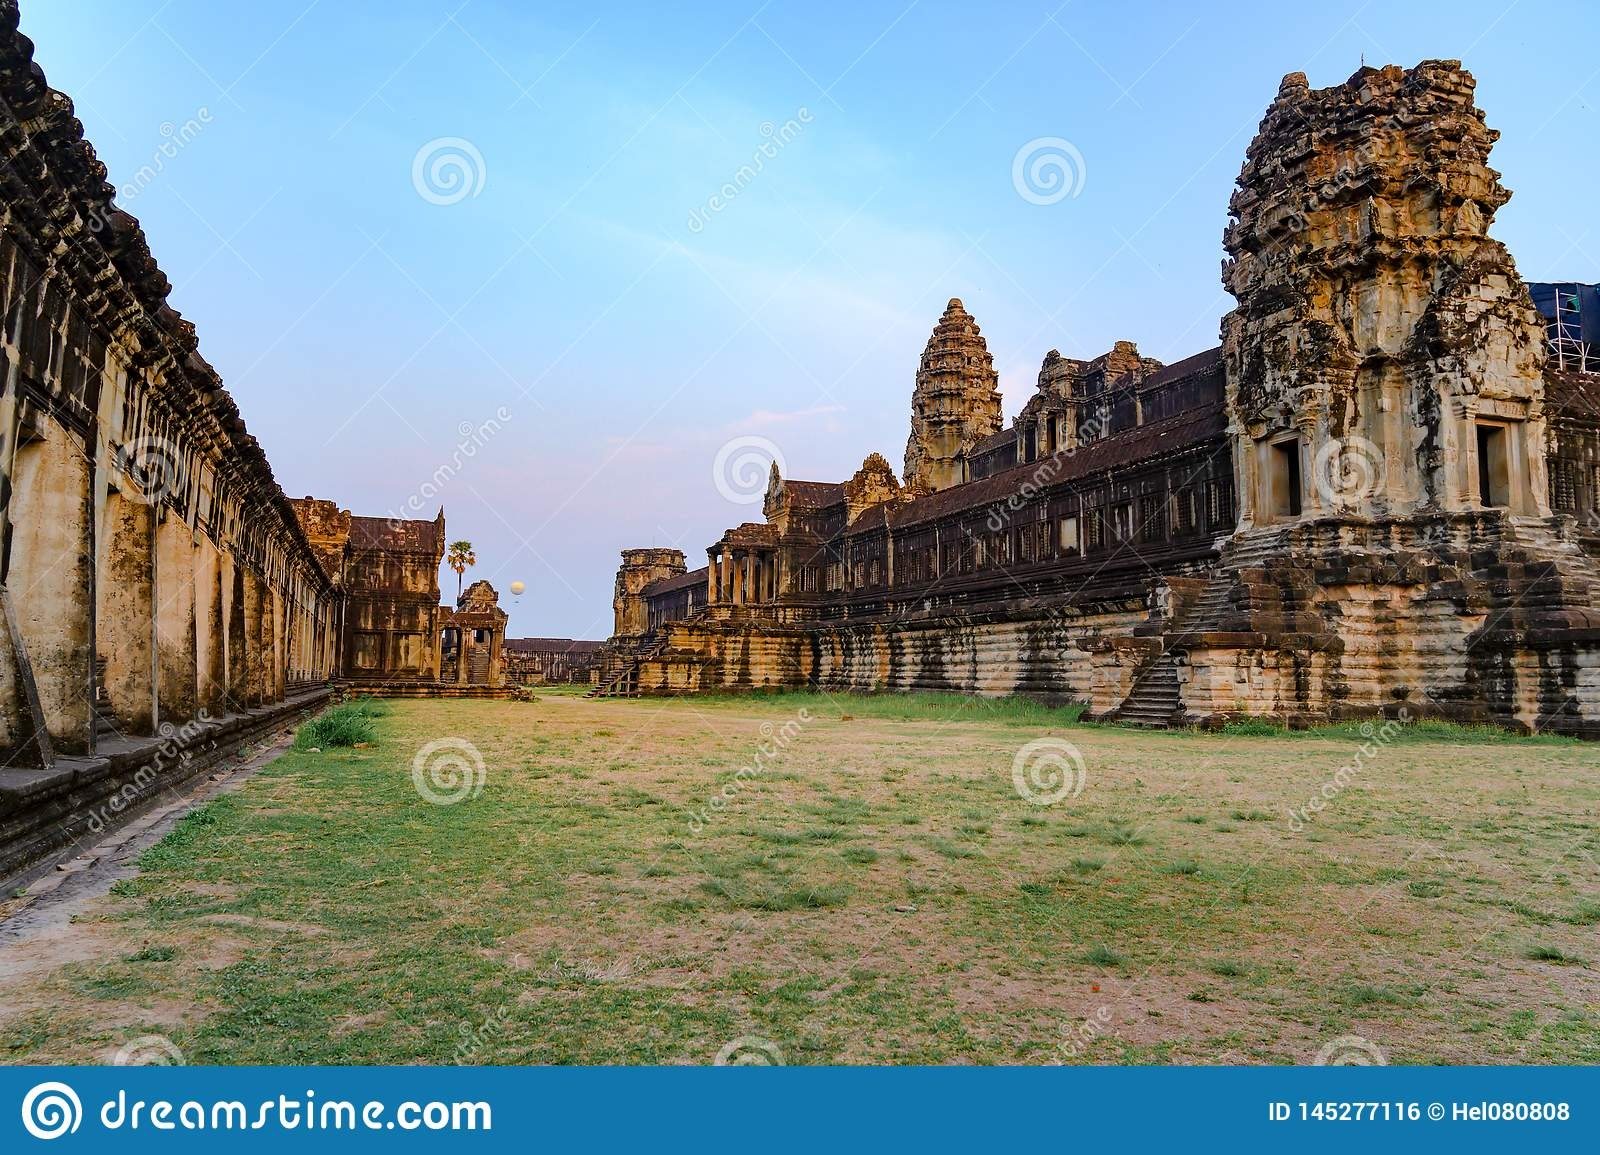 Temple Complex Angkor Wat, Ancient Temple, Siem Reap